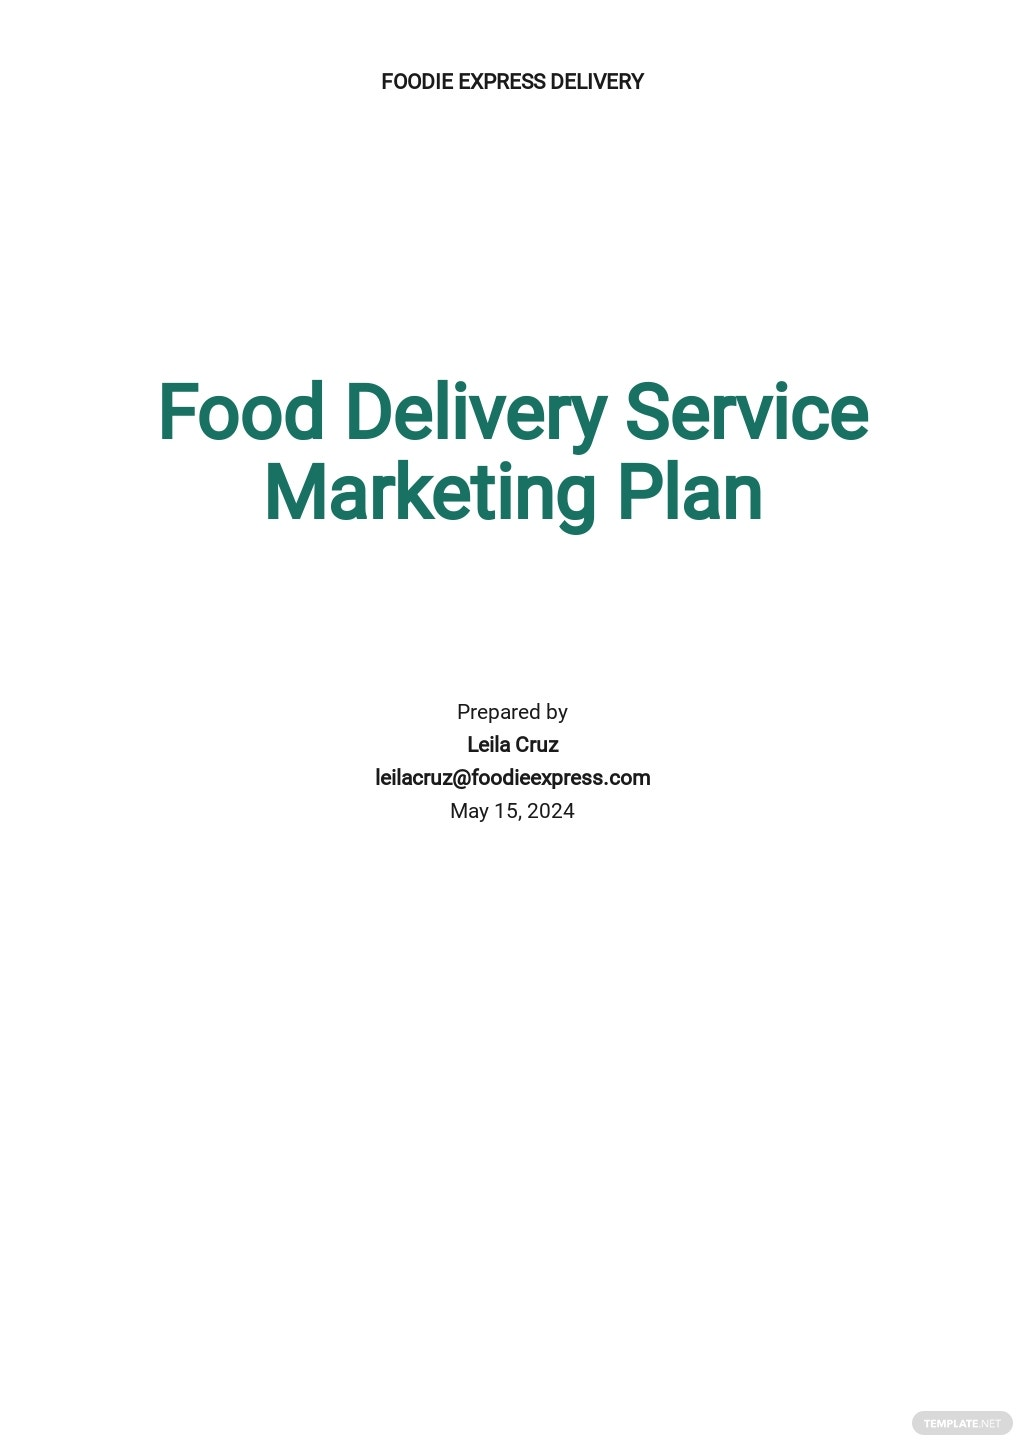 Food Delivery Service Marketing Plan Template.jpe